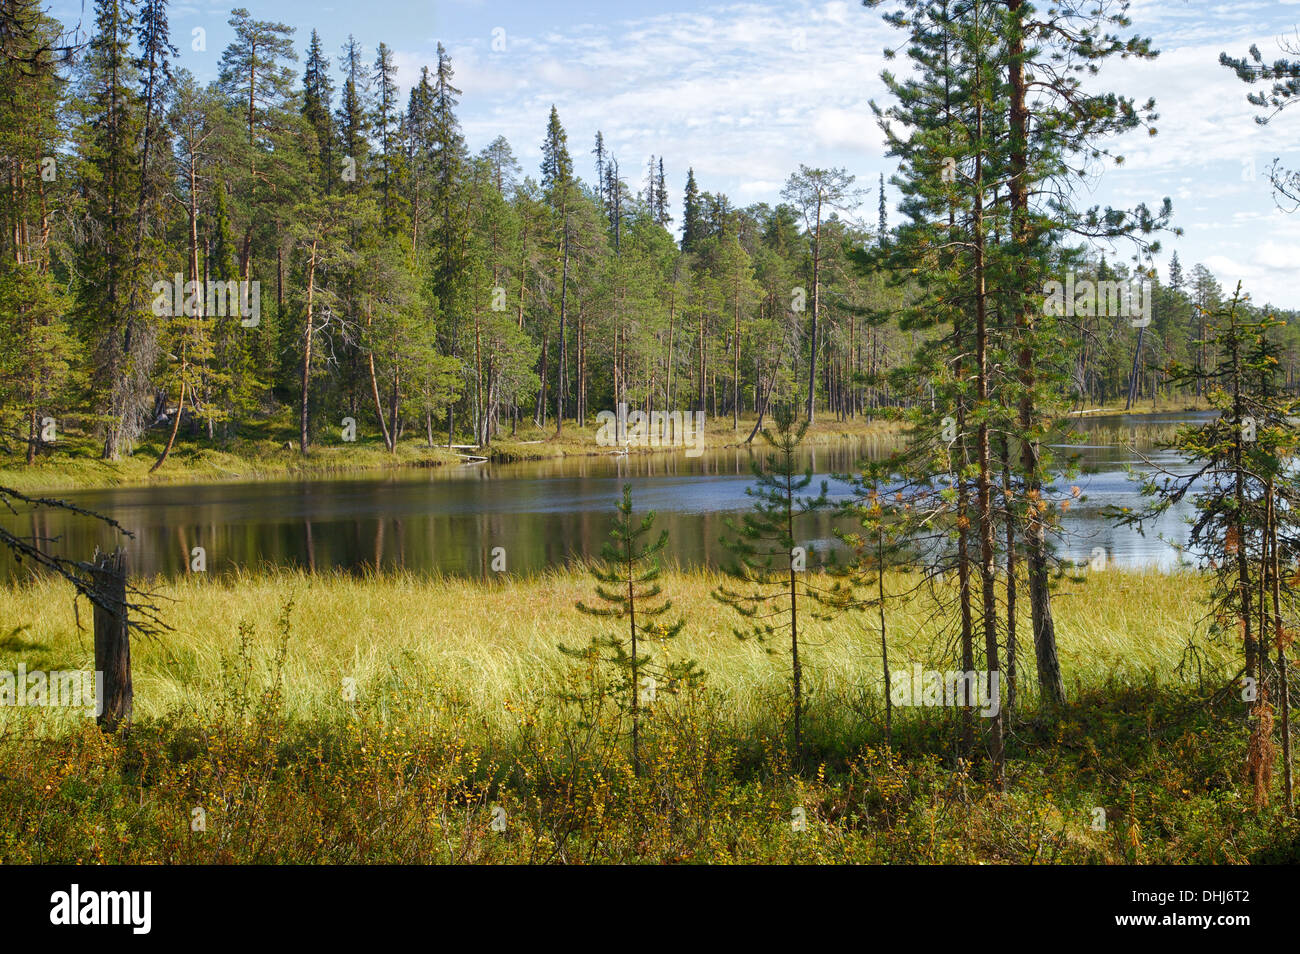 Beautiful Finnish HDR landscape in wilderness with lake and trees - Stock Image